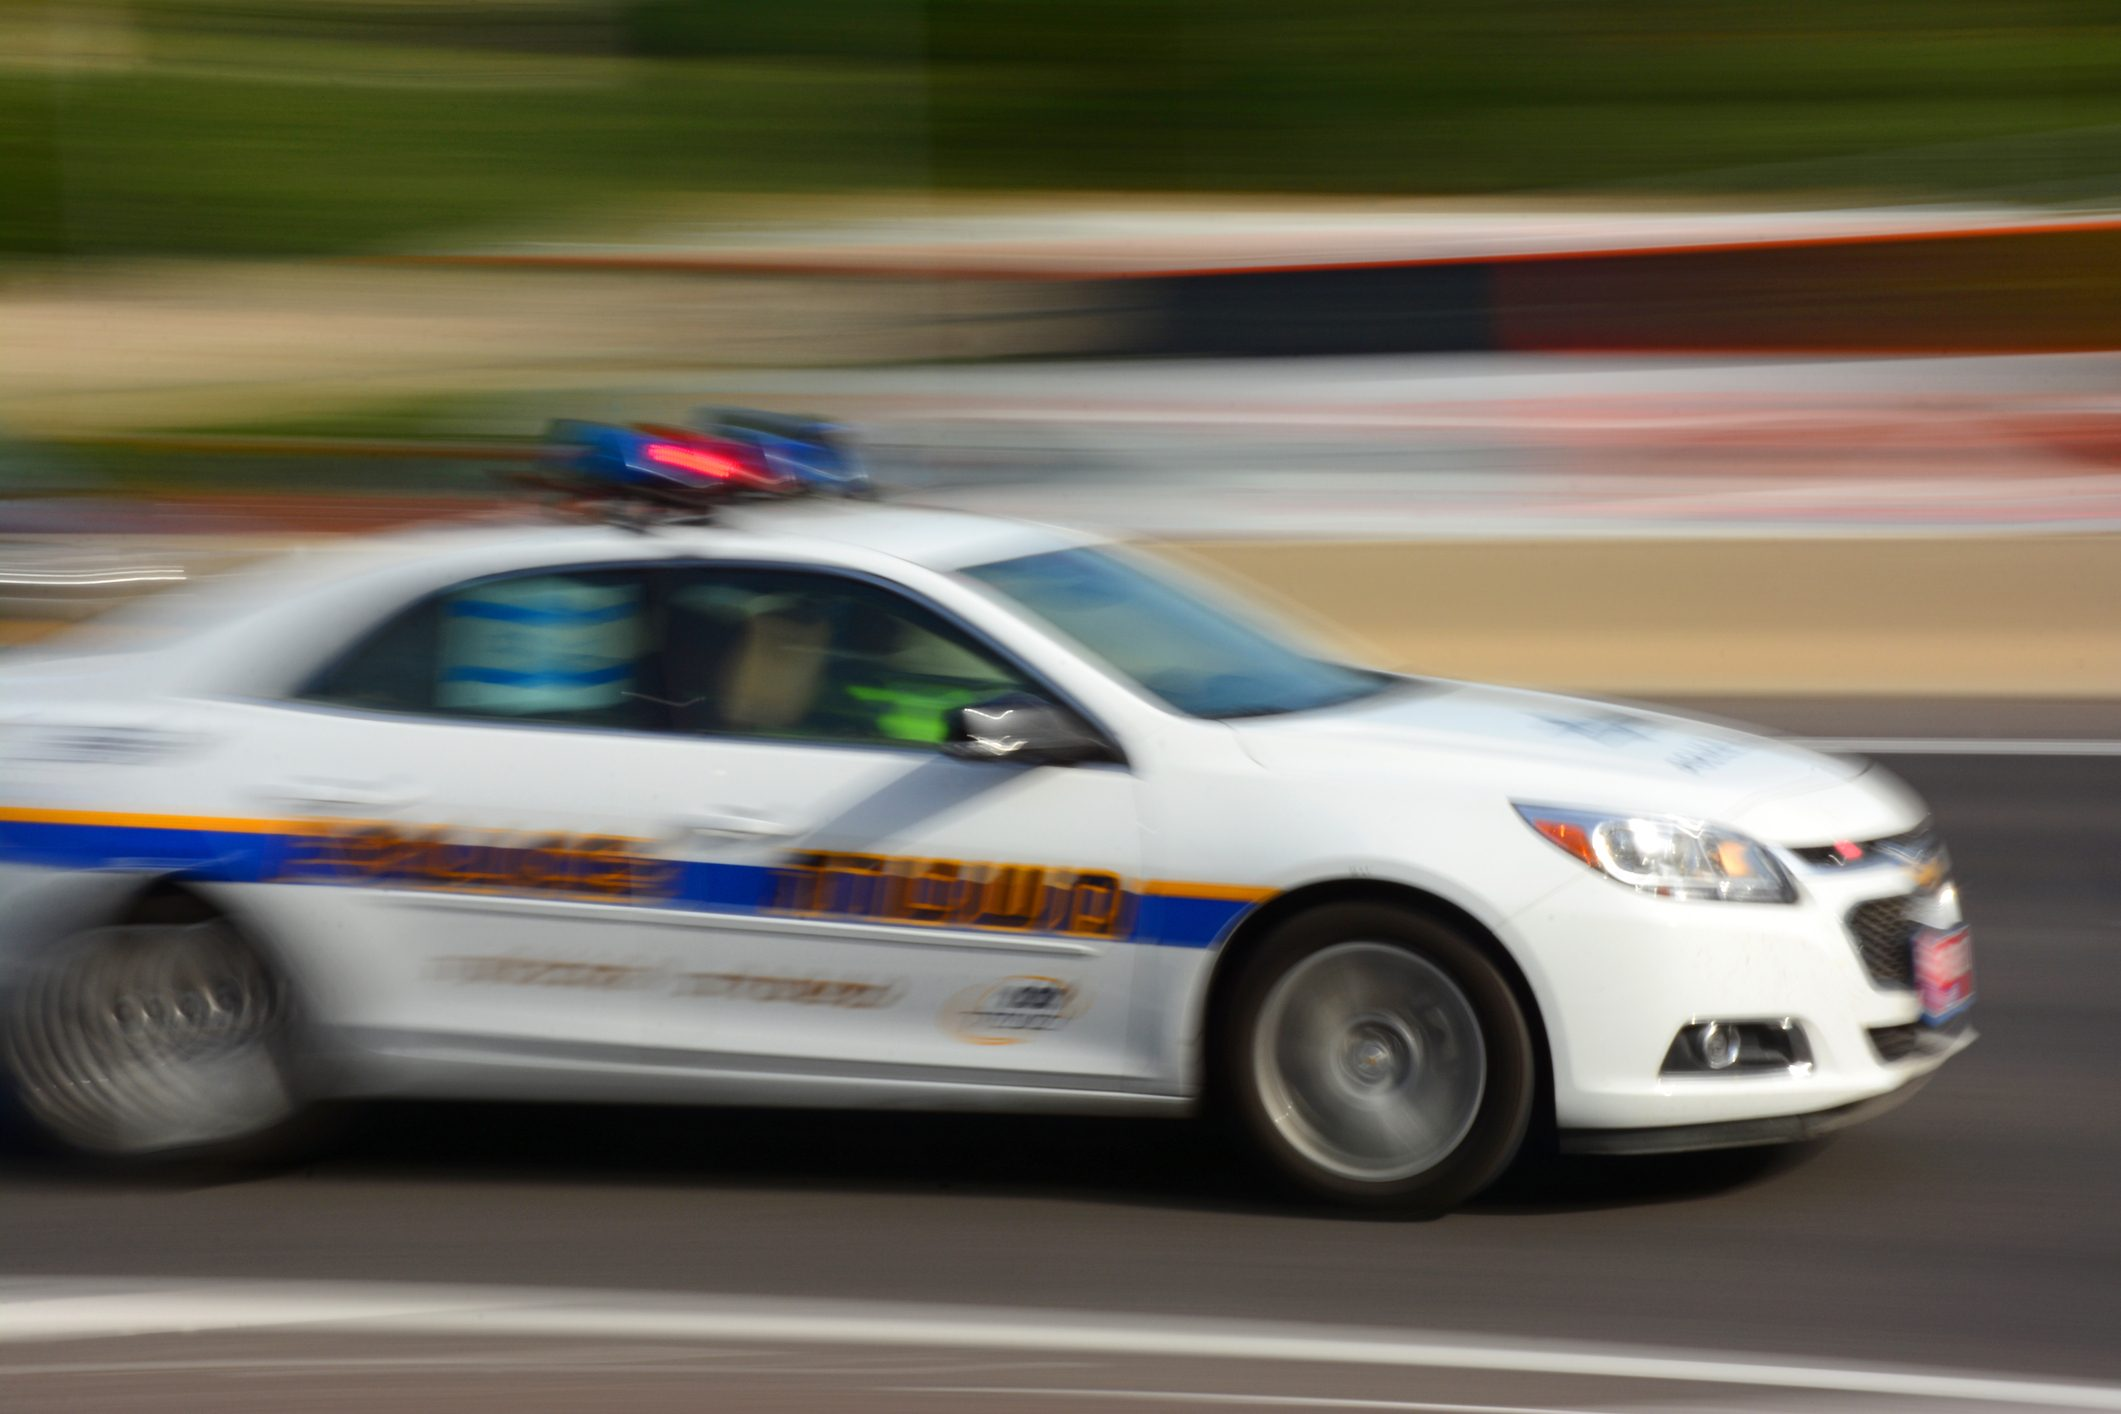 Police car in motion